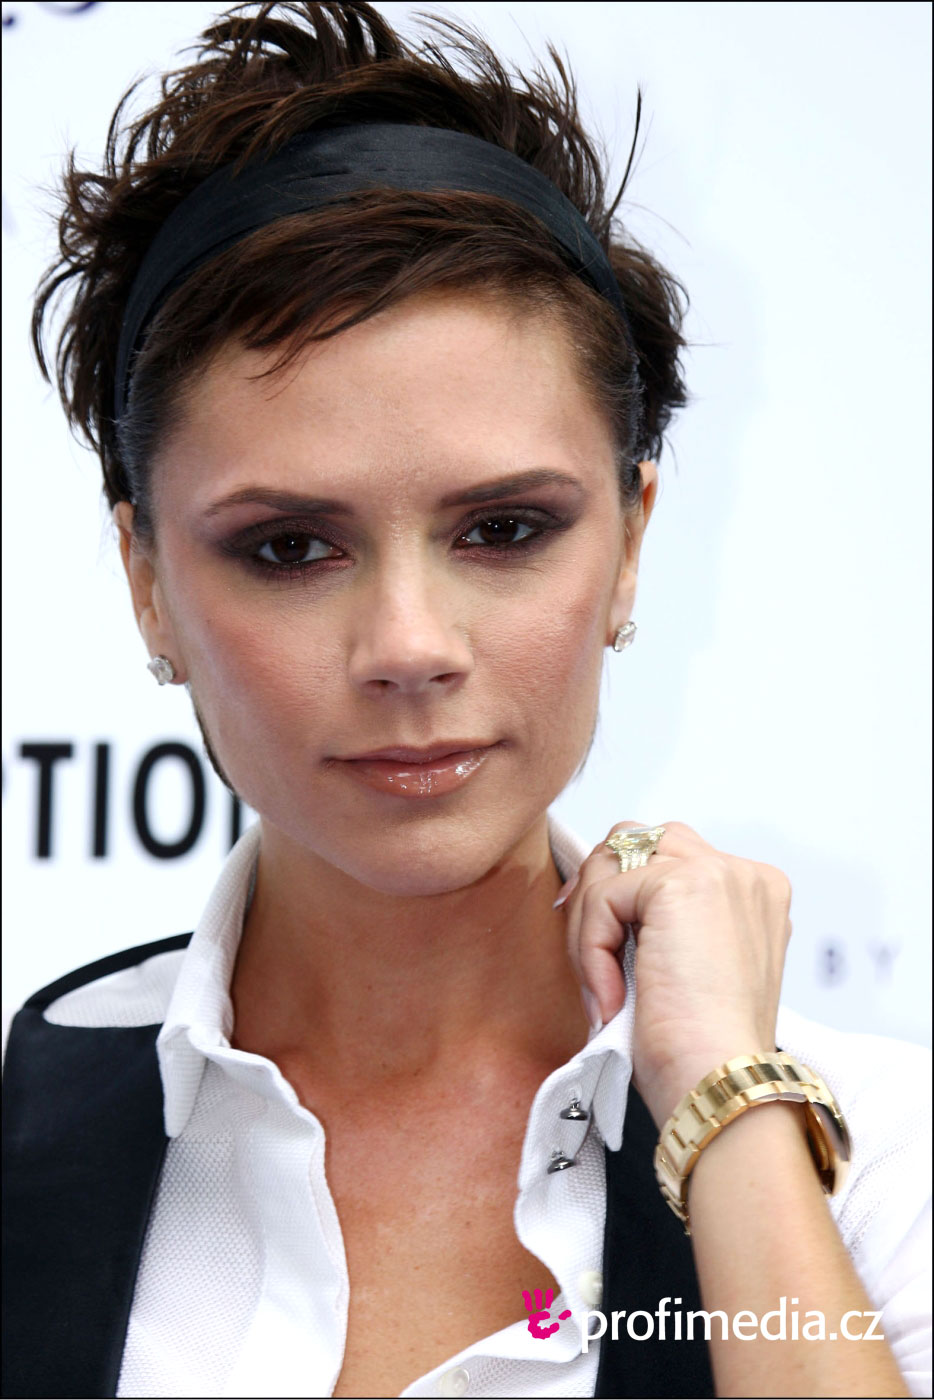 Hairstyle Preview : Hairstyles For Celebrity, Celebrity Hair Styles, celebrity Hairstyles ...